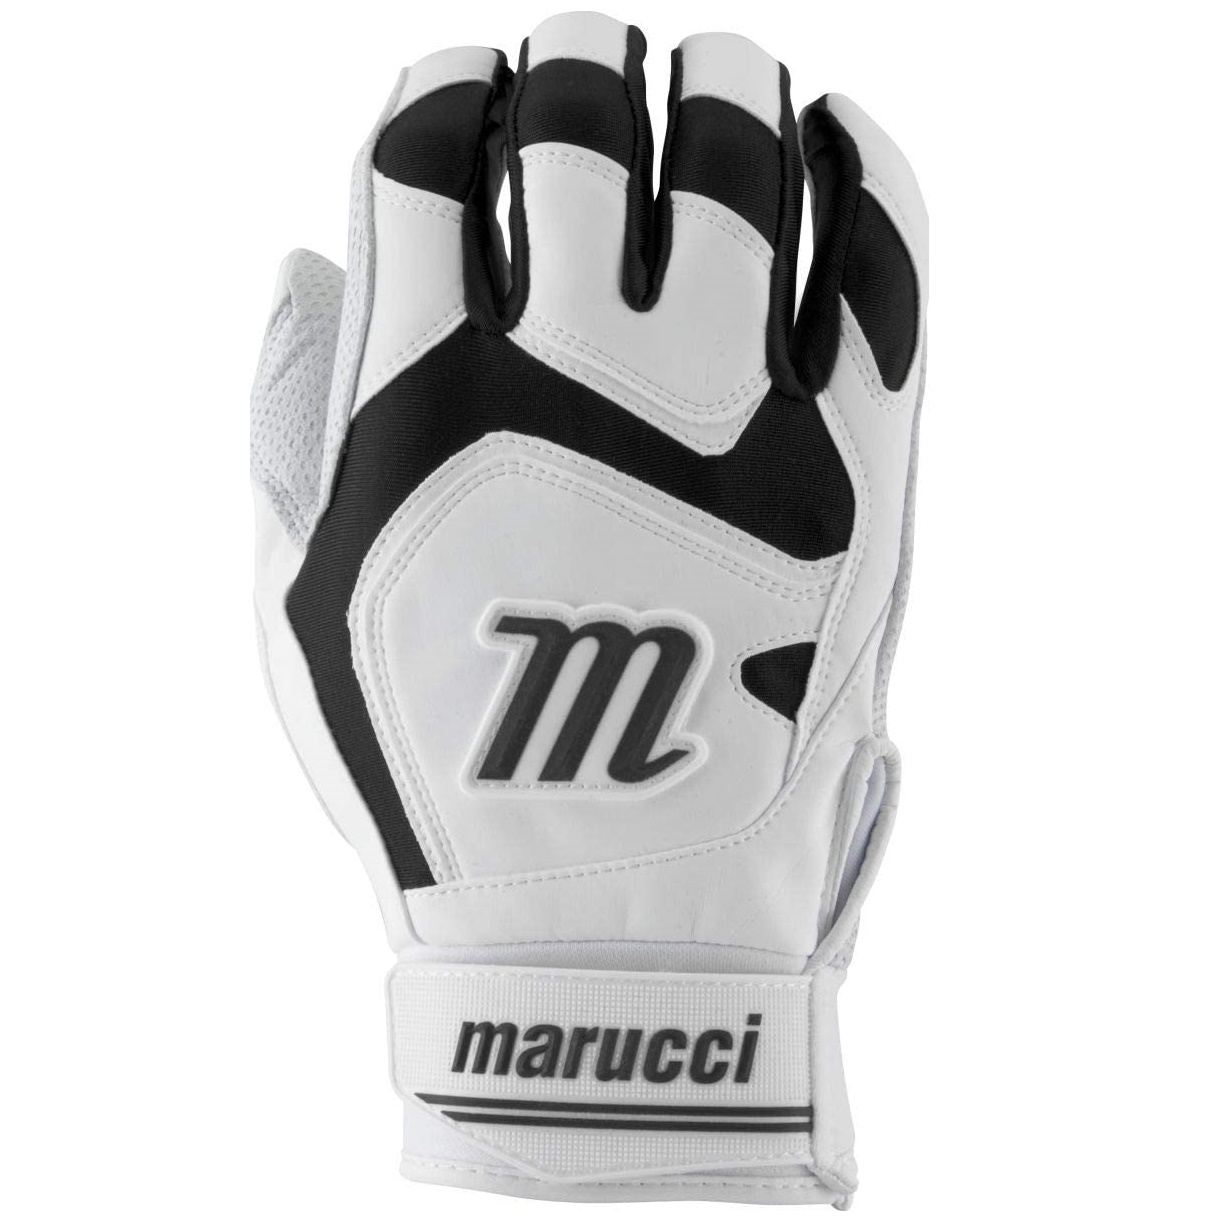 marucci-signature-youth-batting-gloves-black-youth-medium MBGSGN2Y-BKW-YM Marucci  Digitally embossed perforated Cabretta sheepskin palm provides maximum grip and durability